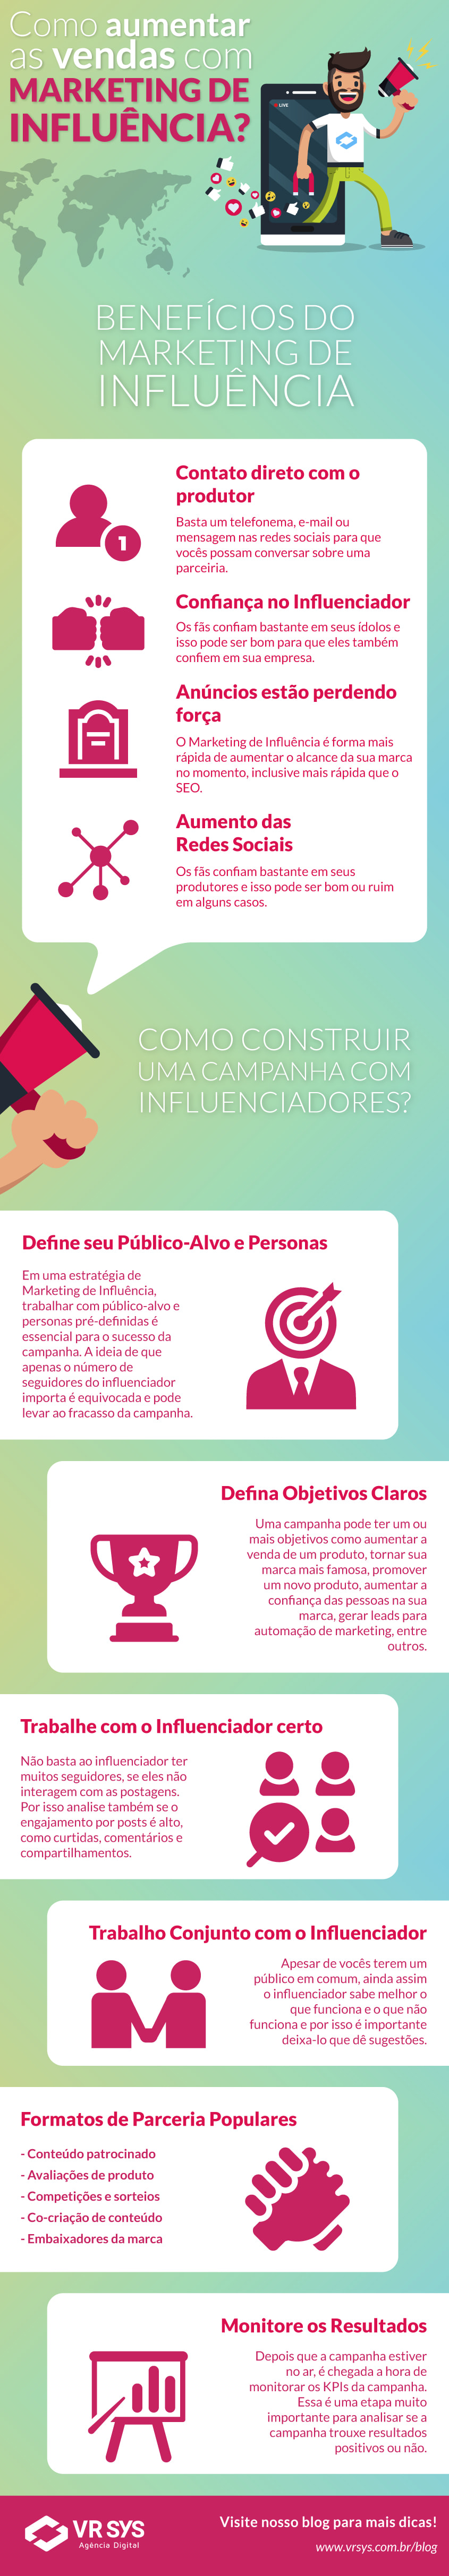 Como aumentar as vendas com Marketing de Influência?